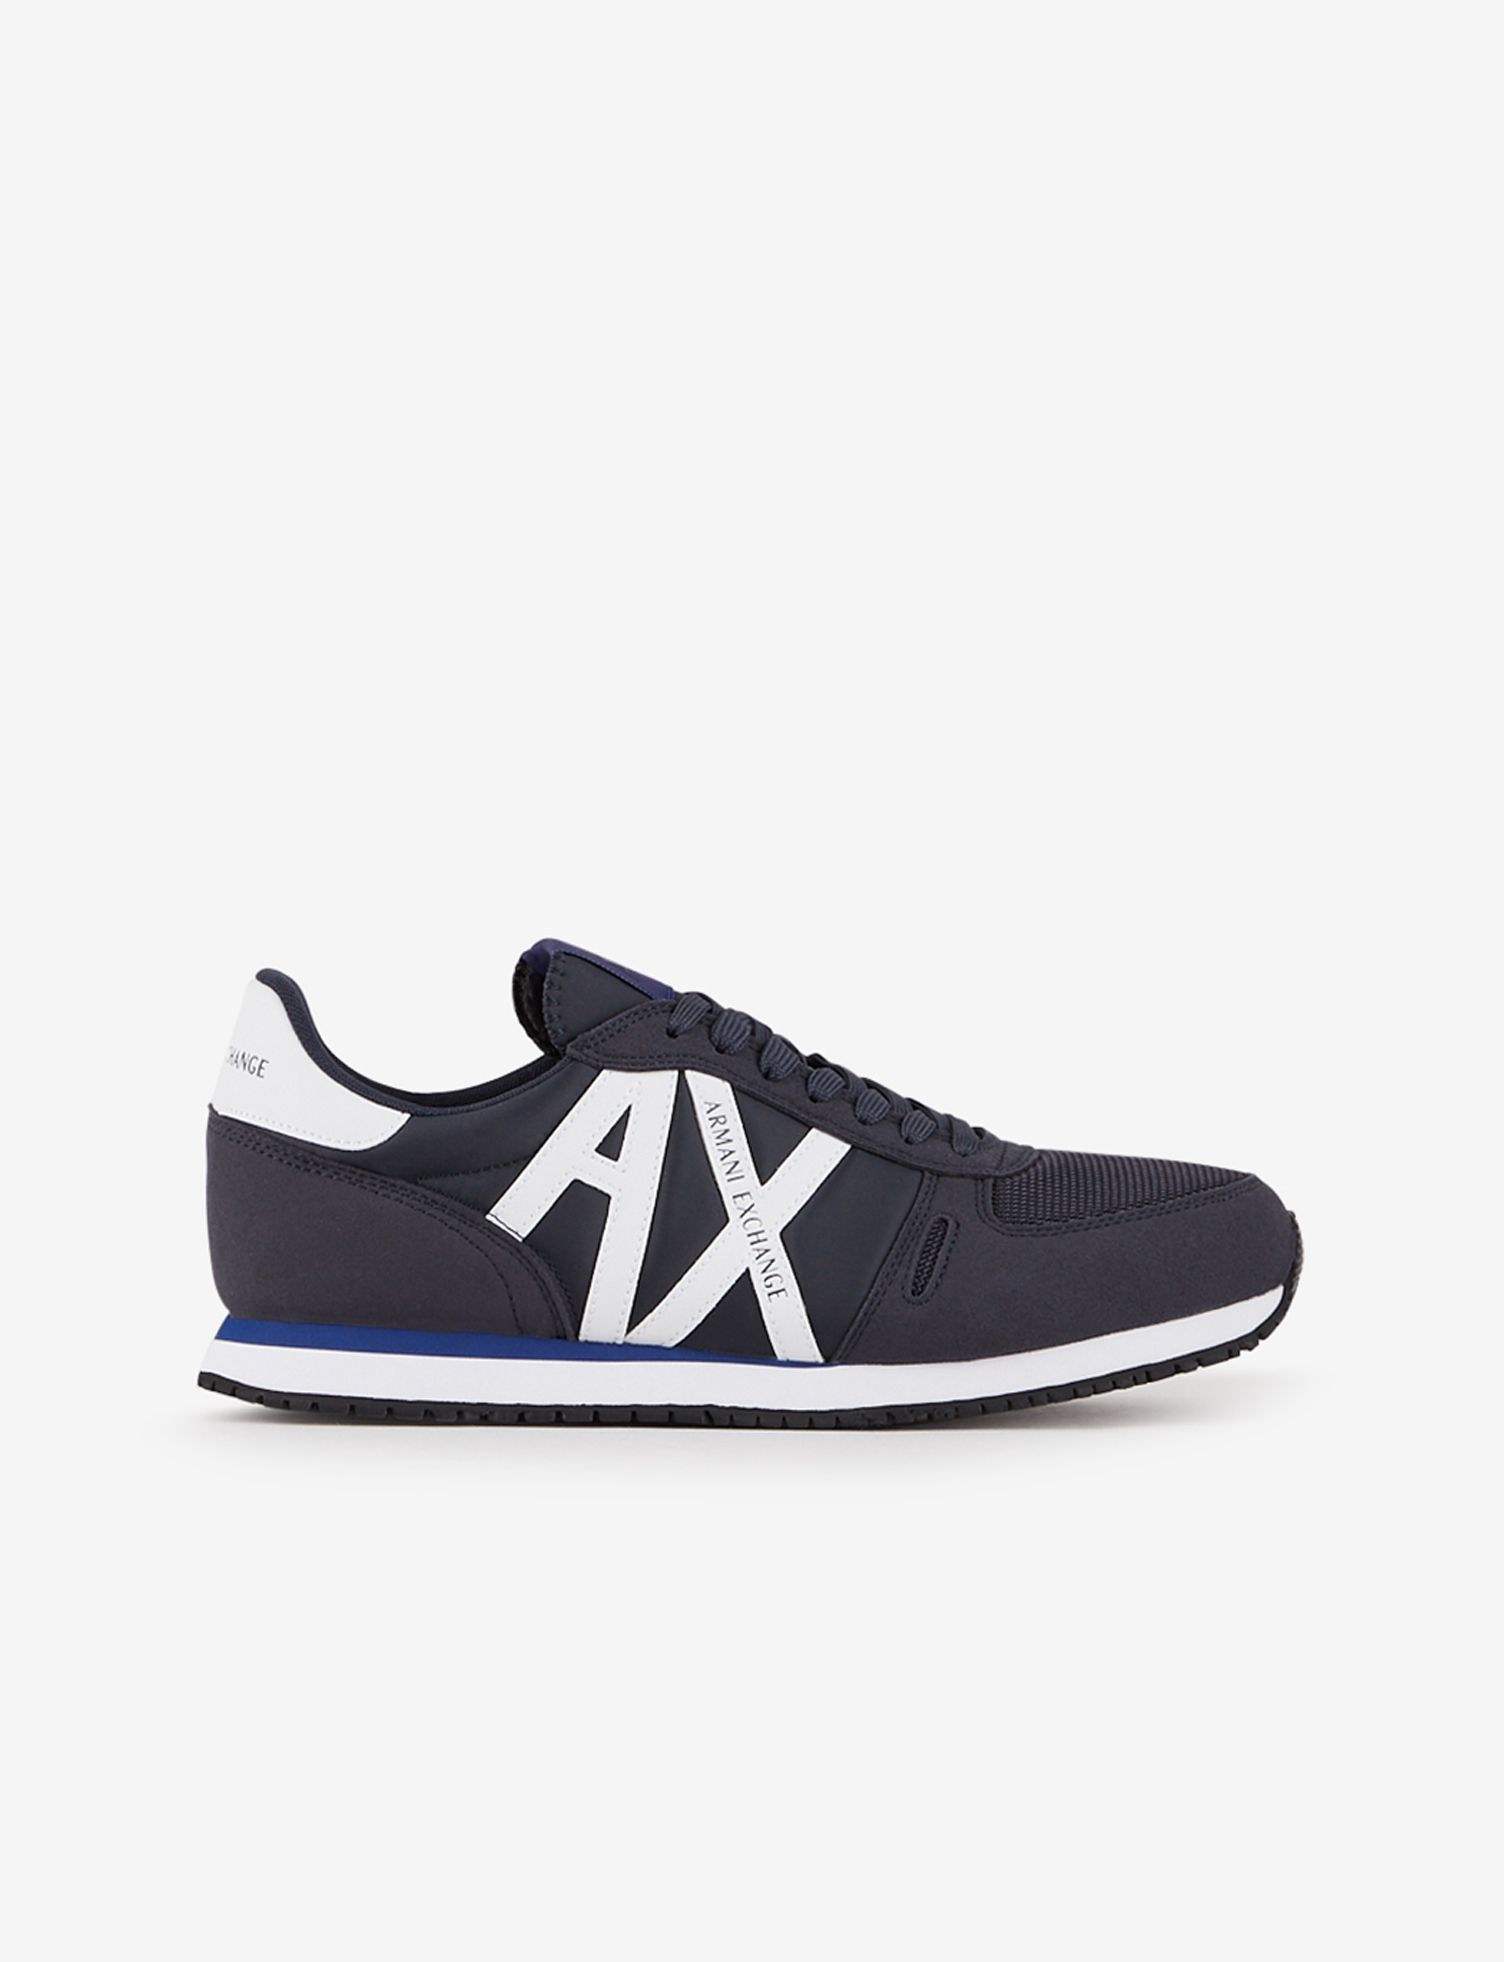 Zapatillas Armani Exchange azul